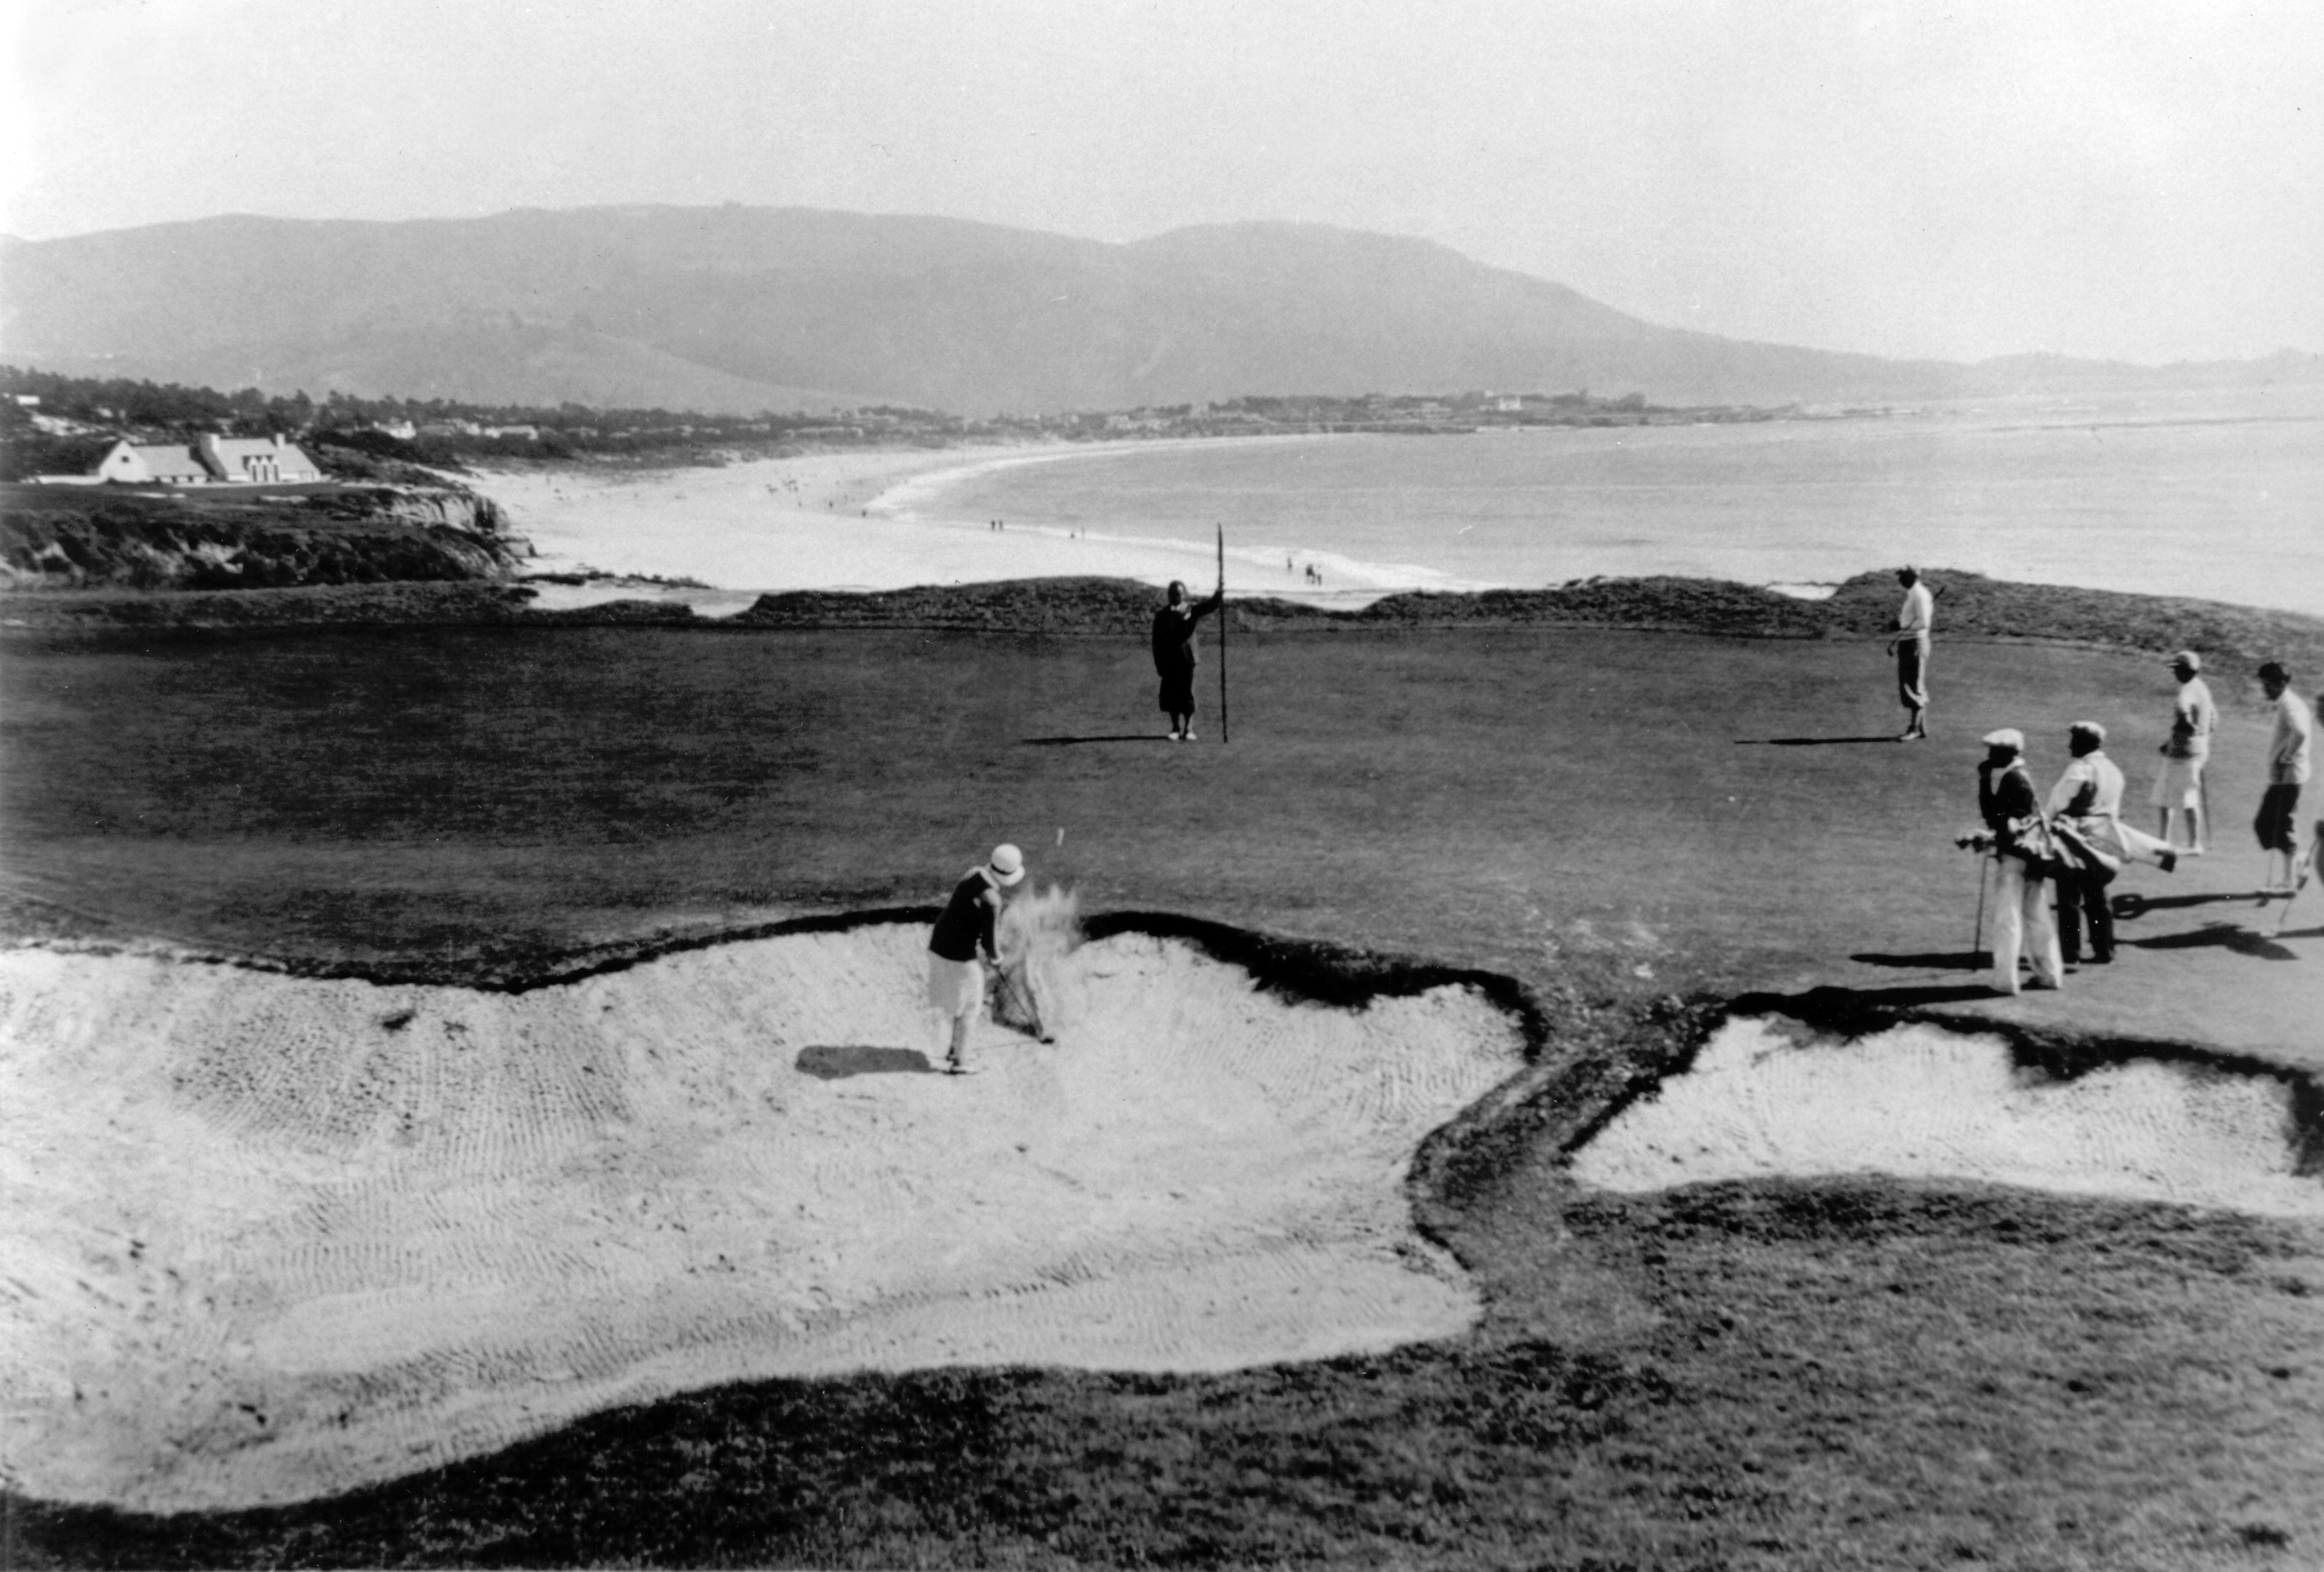 1948 U.S. Women's Amateur at Pebble Beach